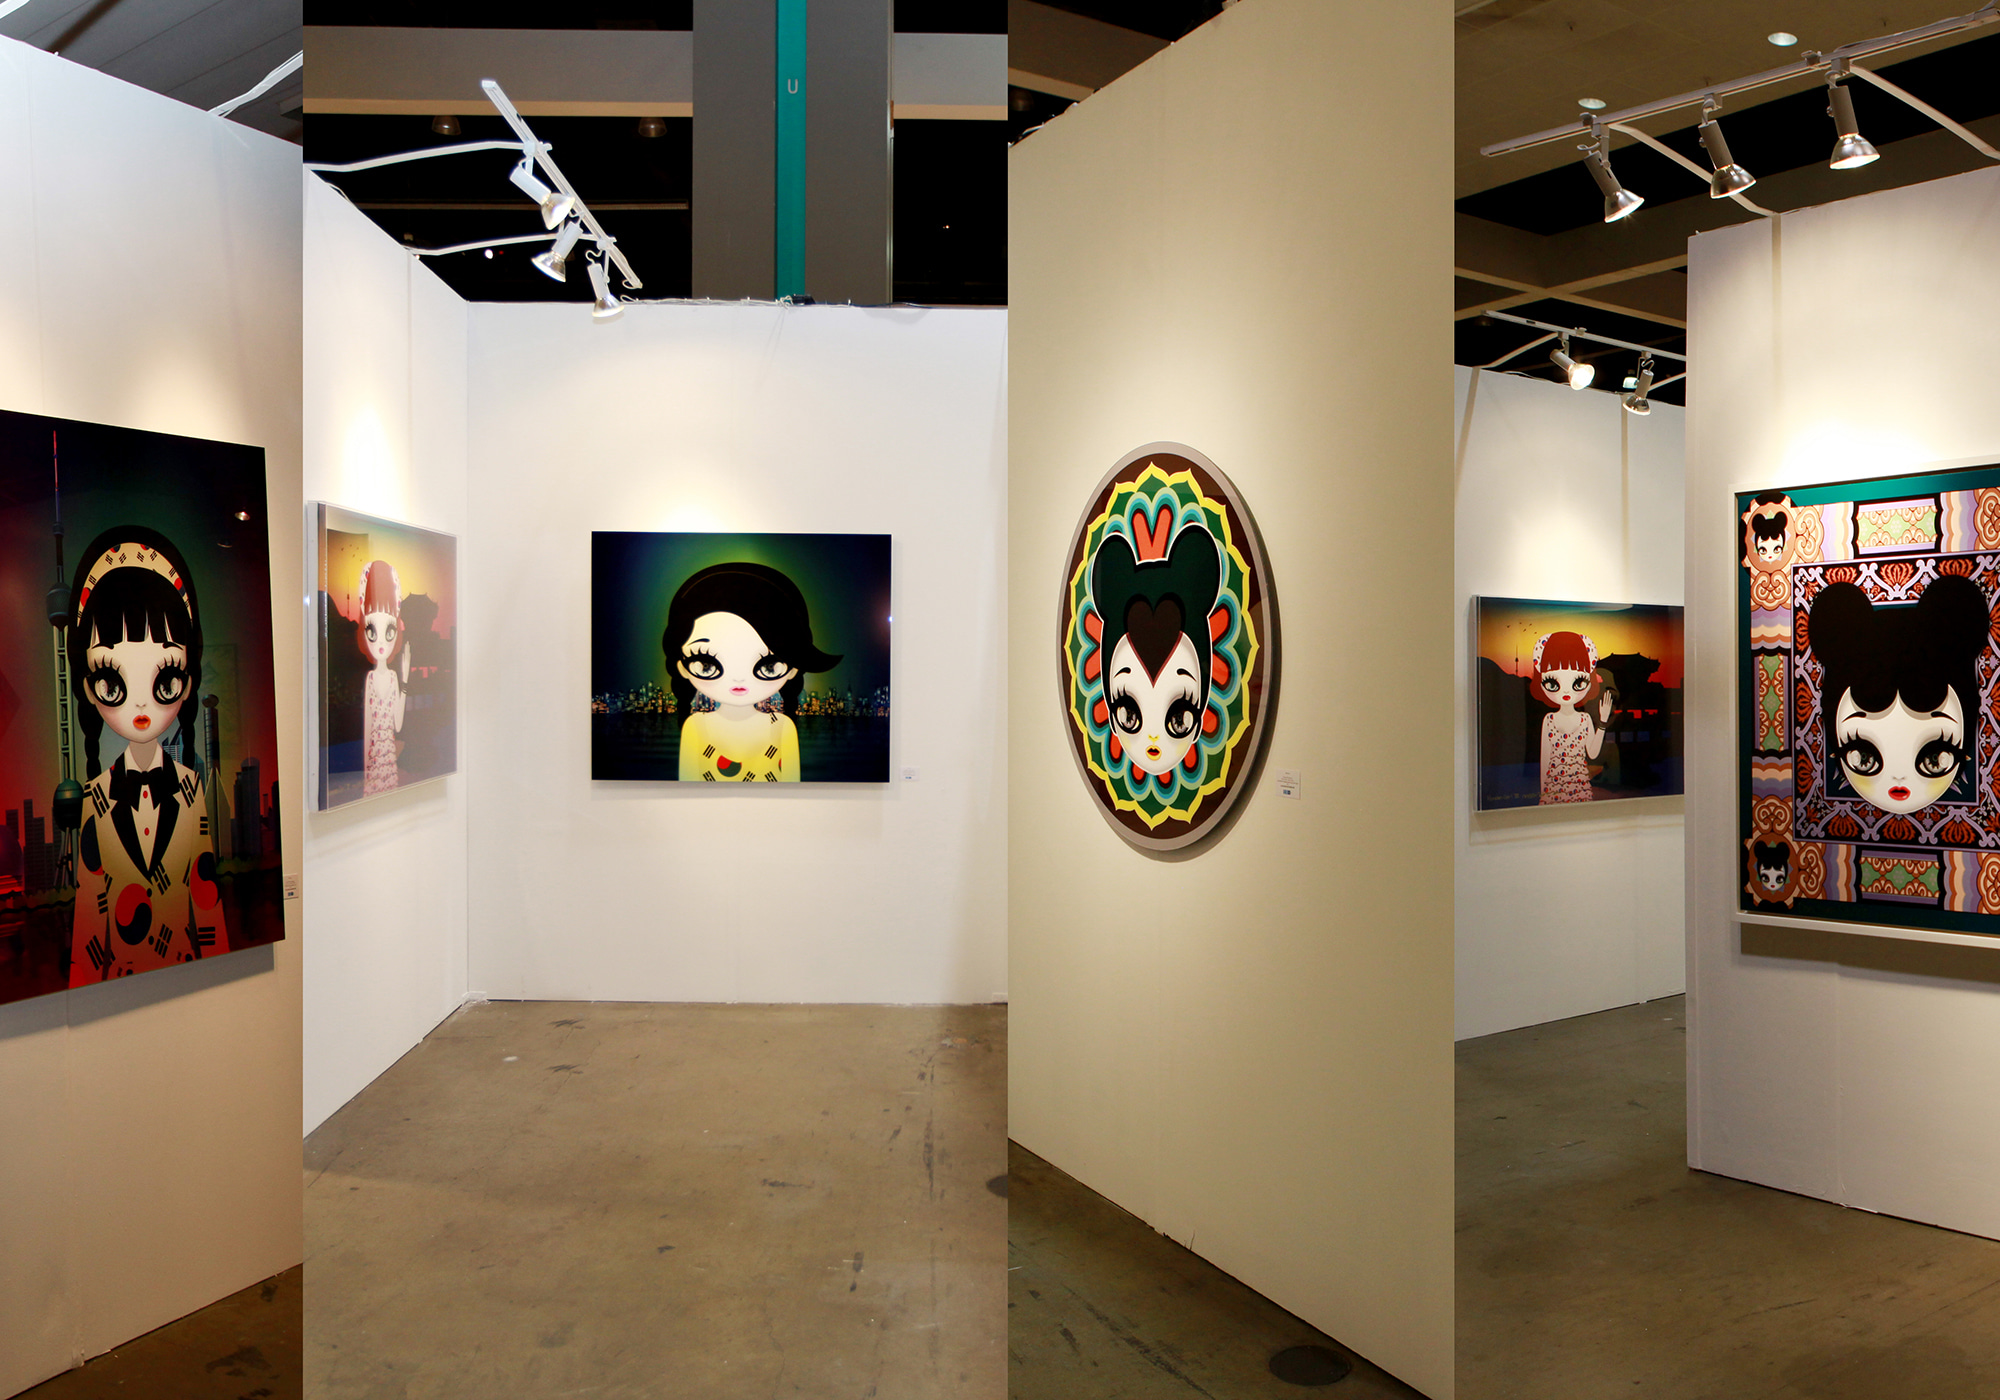 Mari's Solo exhibition at LA art show 2016